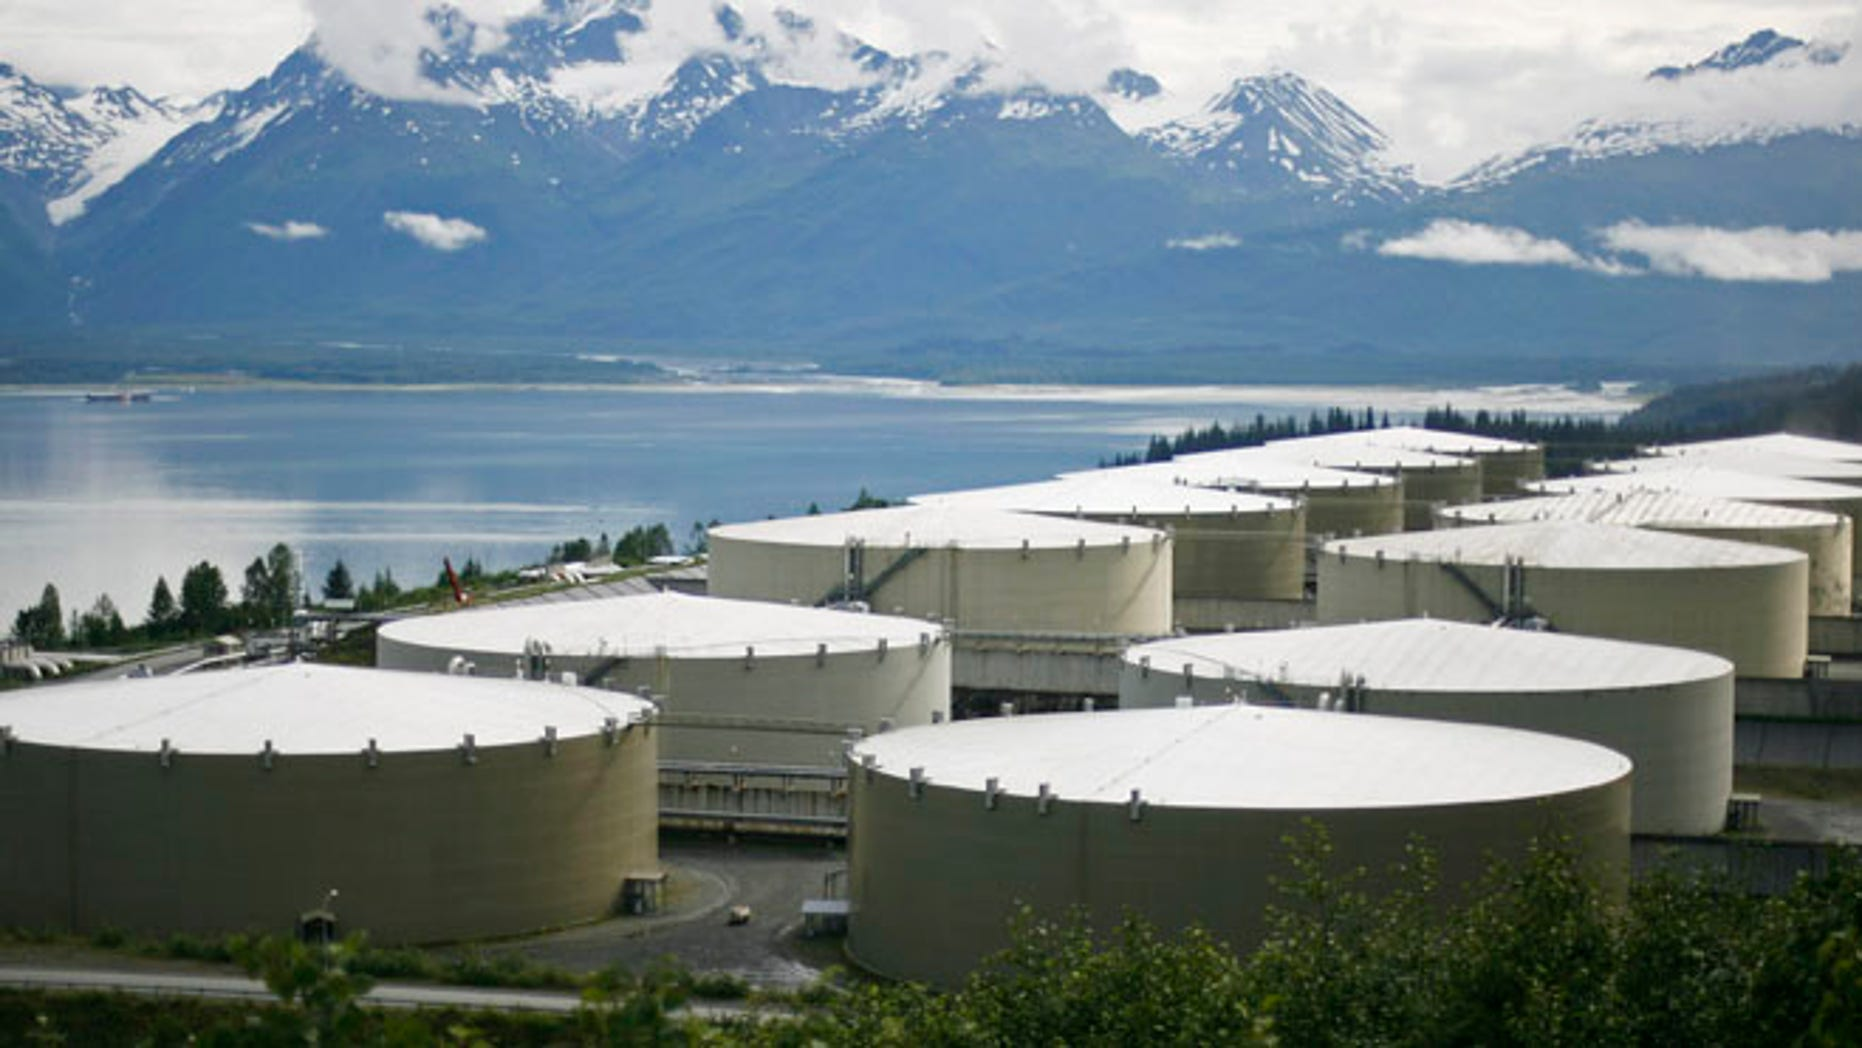 FILE: UNDATED: A field of oil storge tanks at the Trans-Alaska Pipeline Marine Terminal in Valdez, Alaska. (REUTERS)